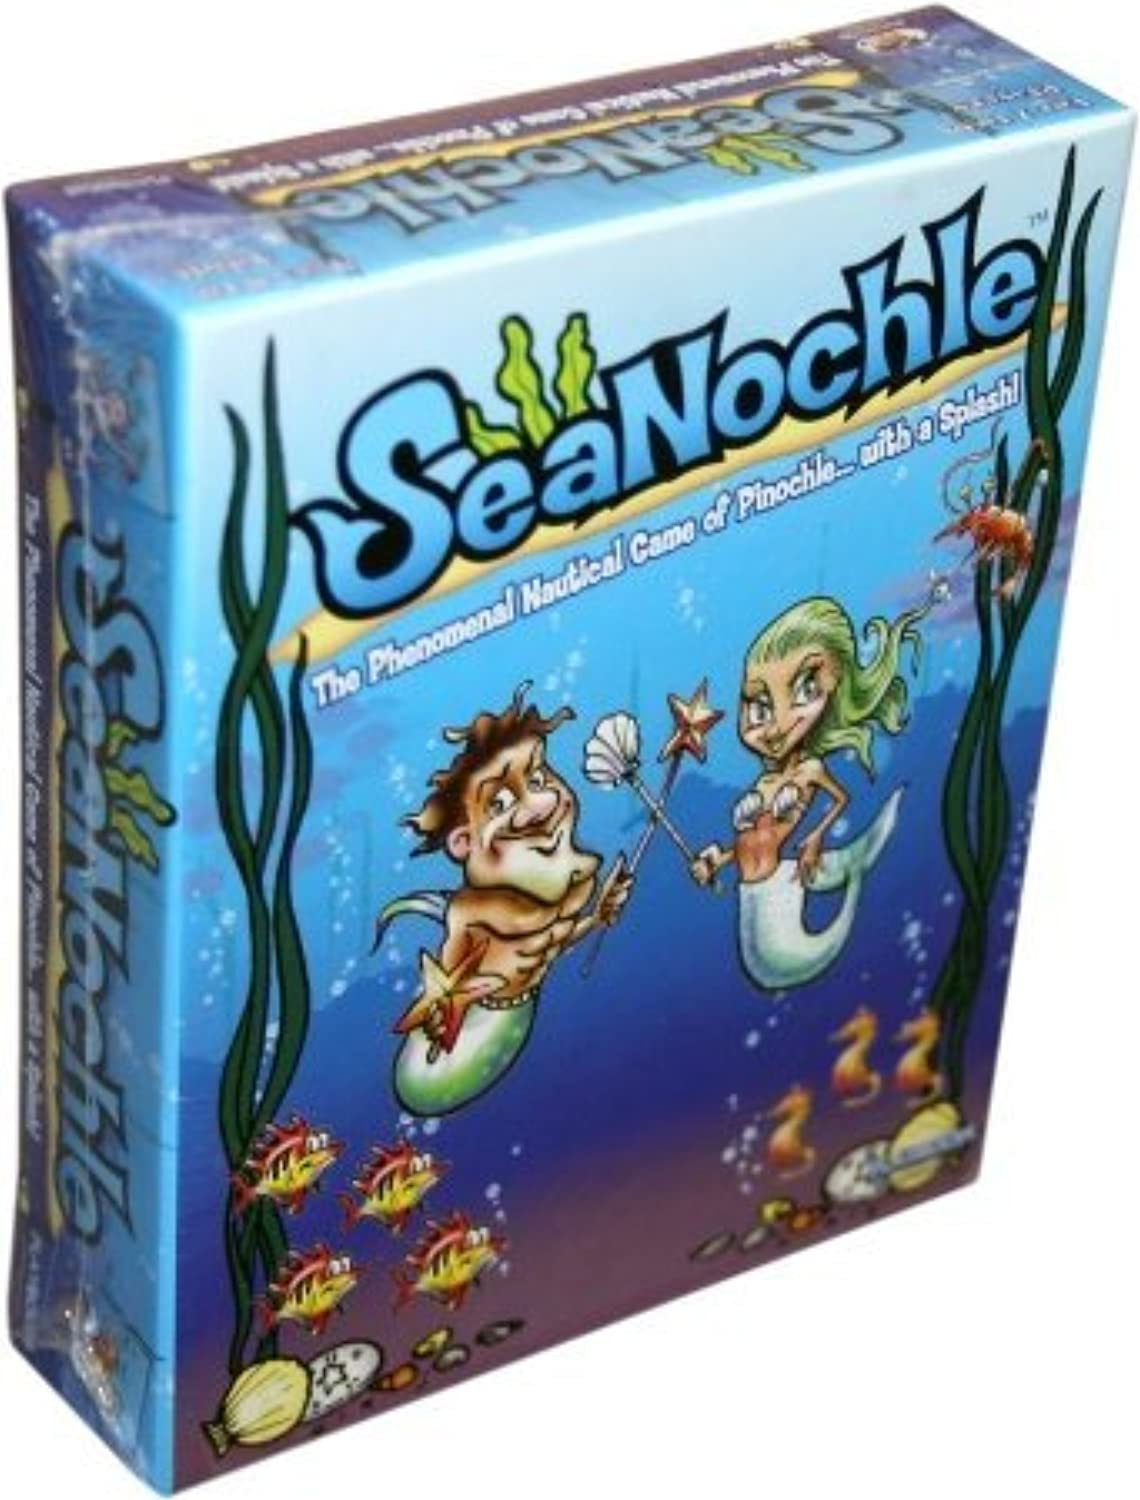 compra limitada SeaNochle SeaNochle SeaNochle - The Phenomenal Nautical Juego of Pinochle with a Splash  by Jugarroom Entertainment  a la venta